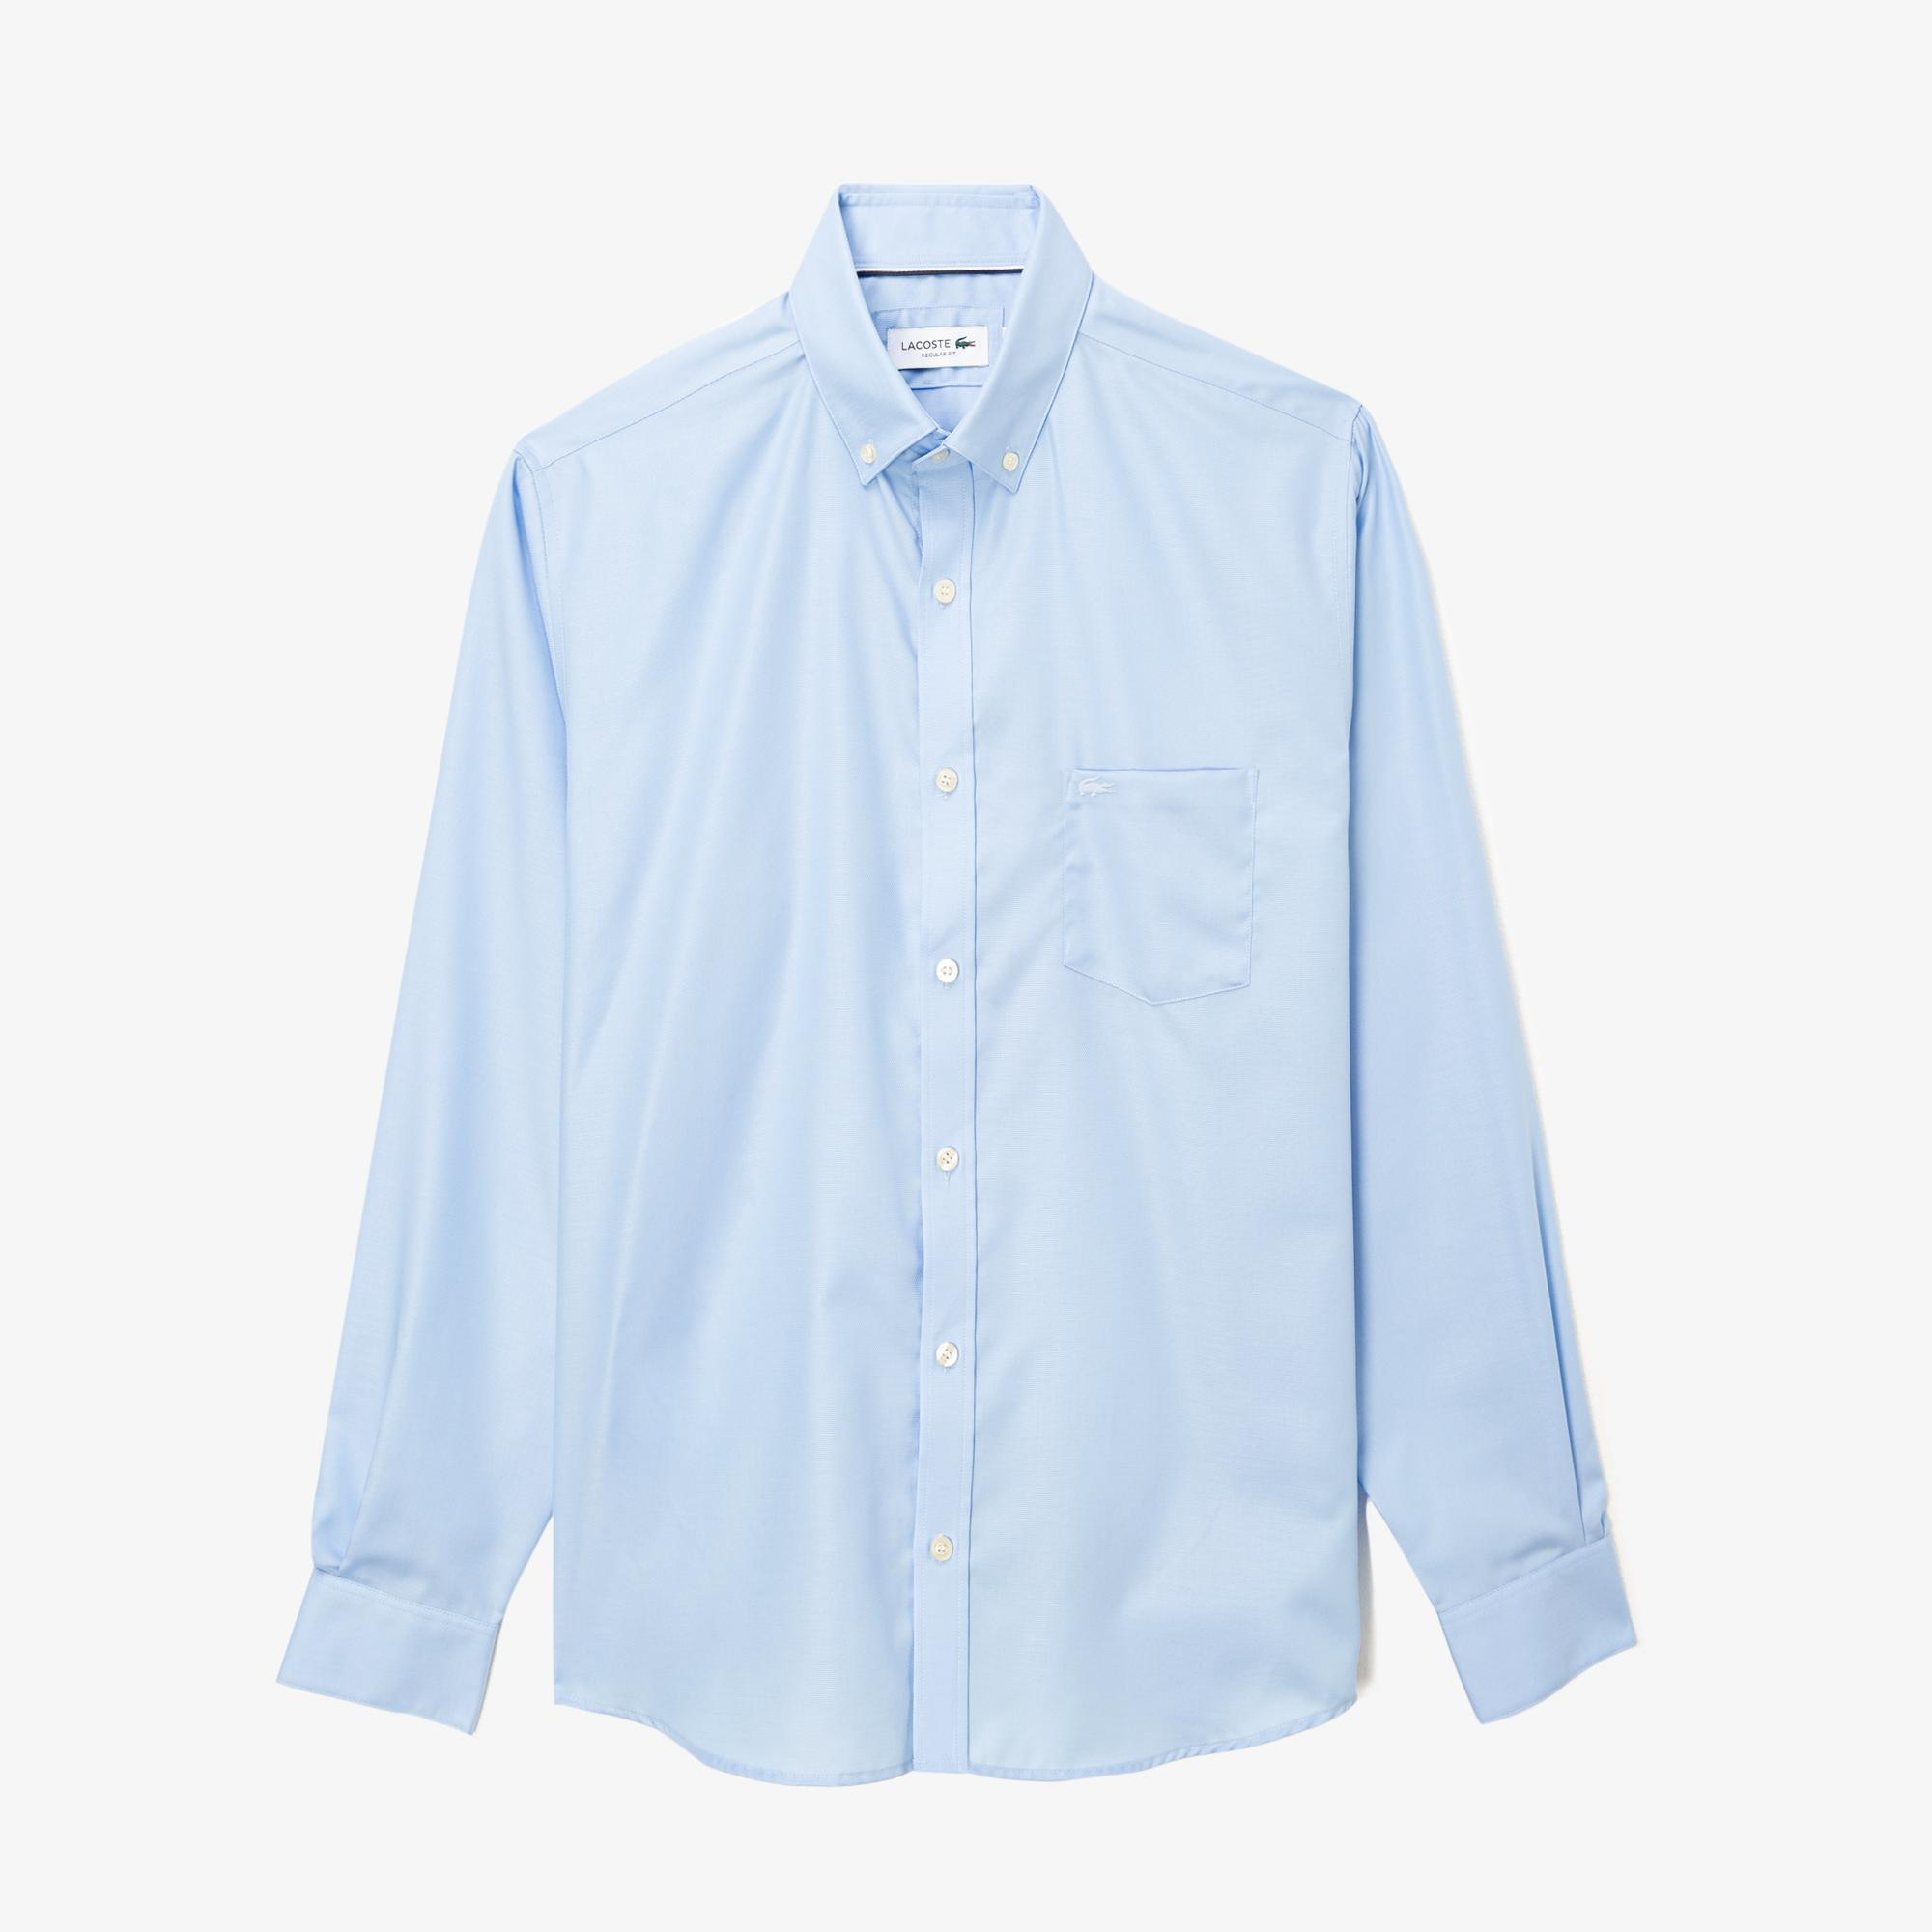 Lacoste Men's Regular Fit Cotton Mini Piqué Shirt